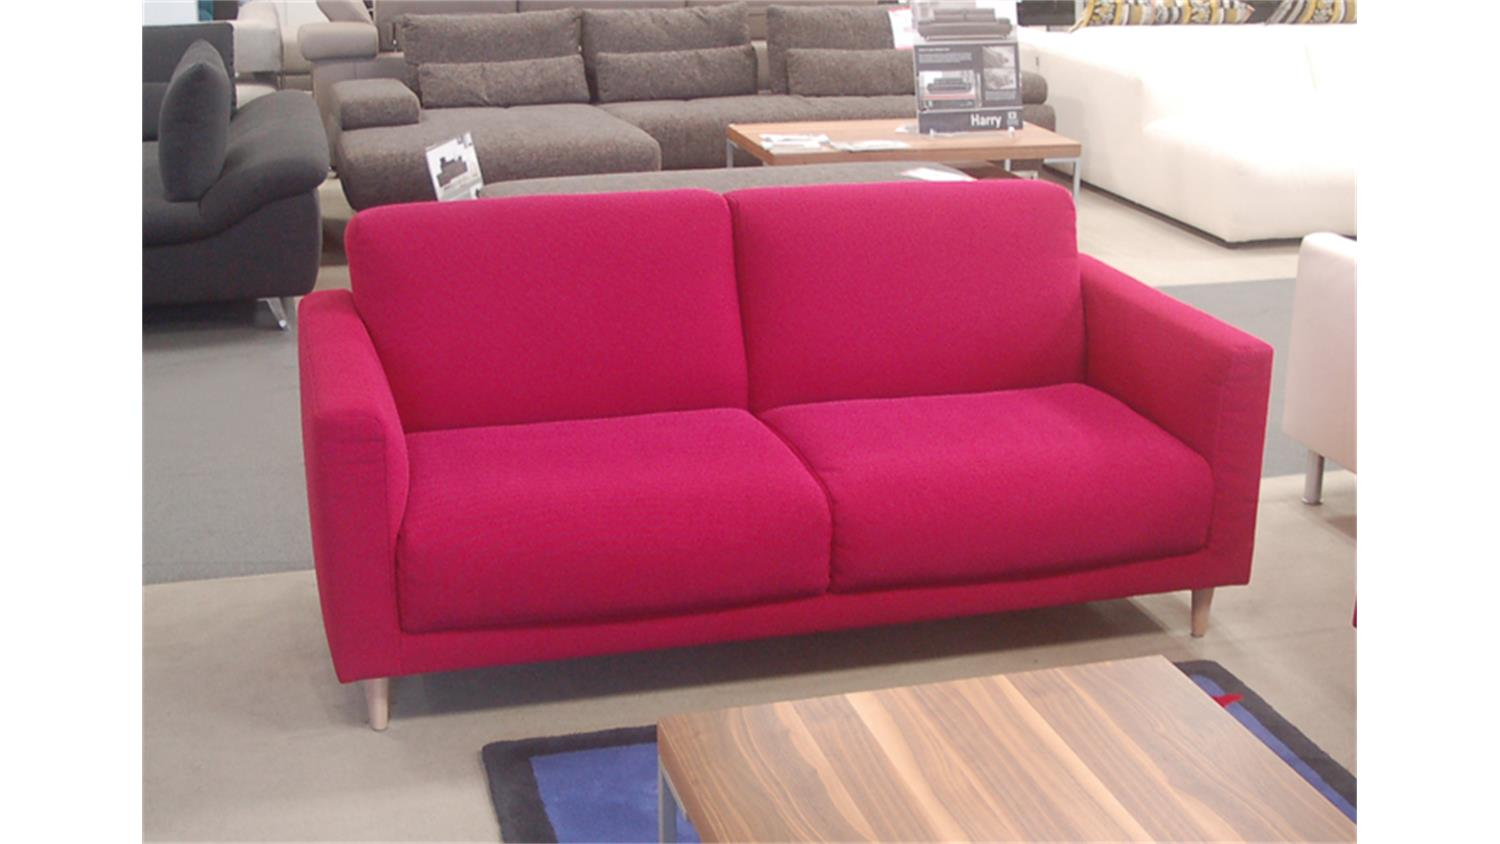 rolf benz sofa freistil 141 stoff violettrot. Black Bedroom Furniture Sets. Home Design Ideas